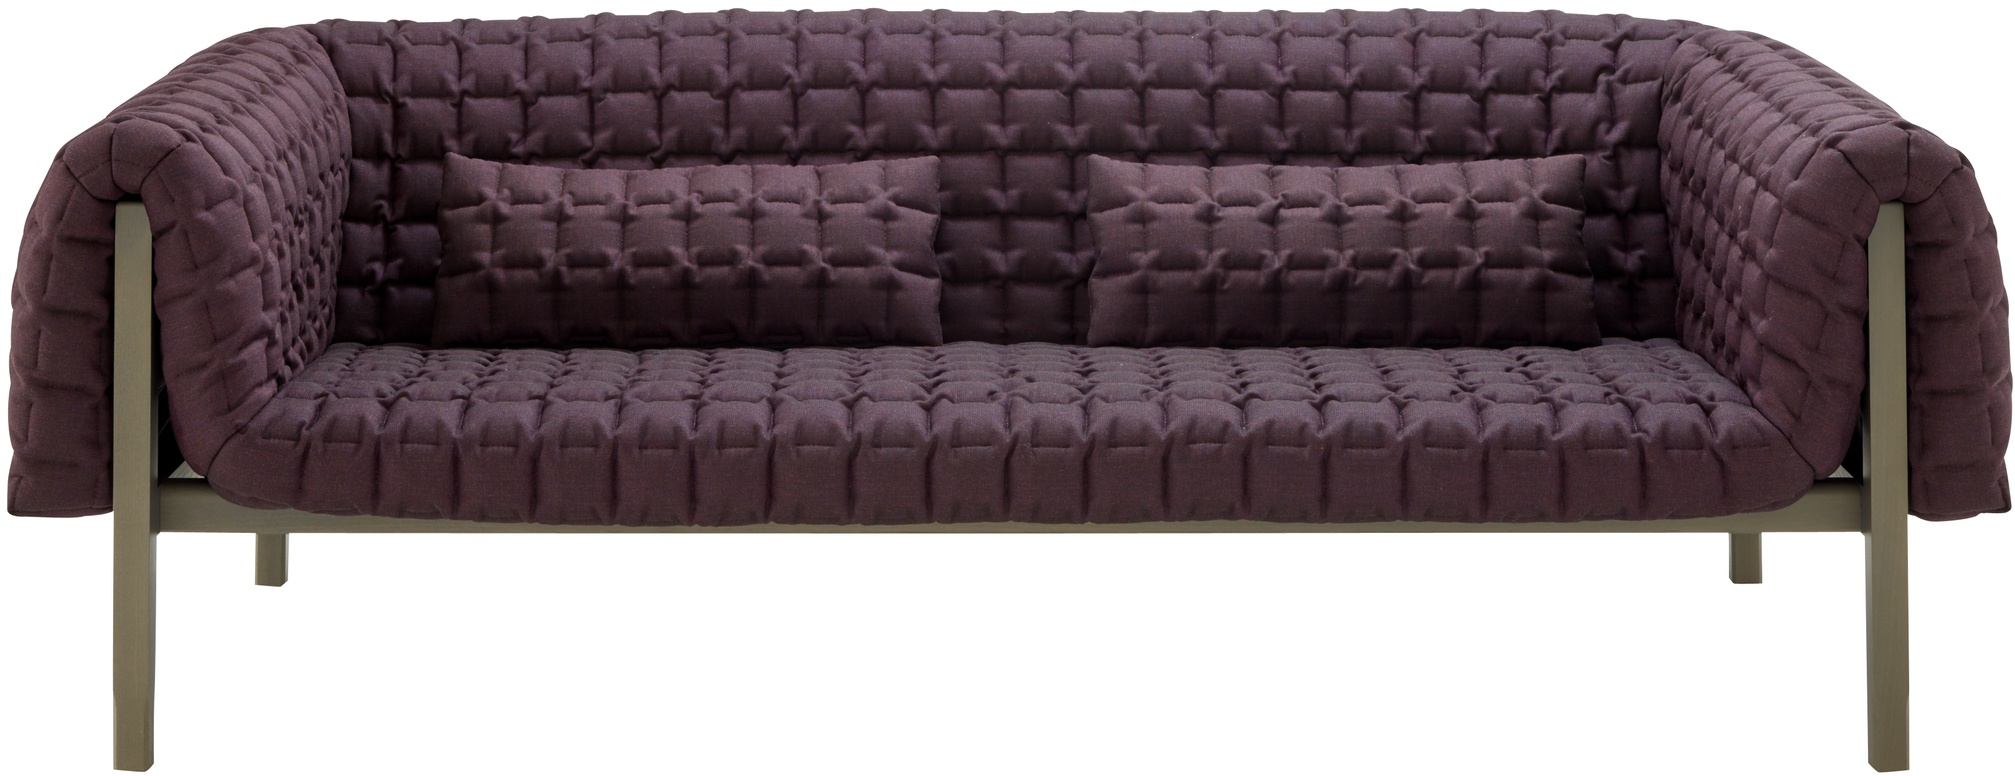 schlafsofa trkis excellent zoyl home furniture sofa. Black Bedroom Furniture Sets. Home Design Ideas